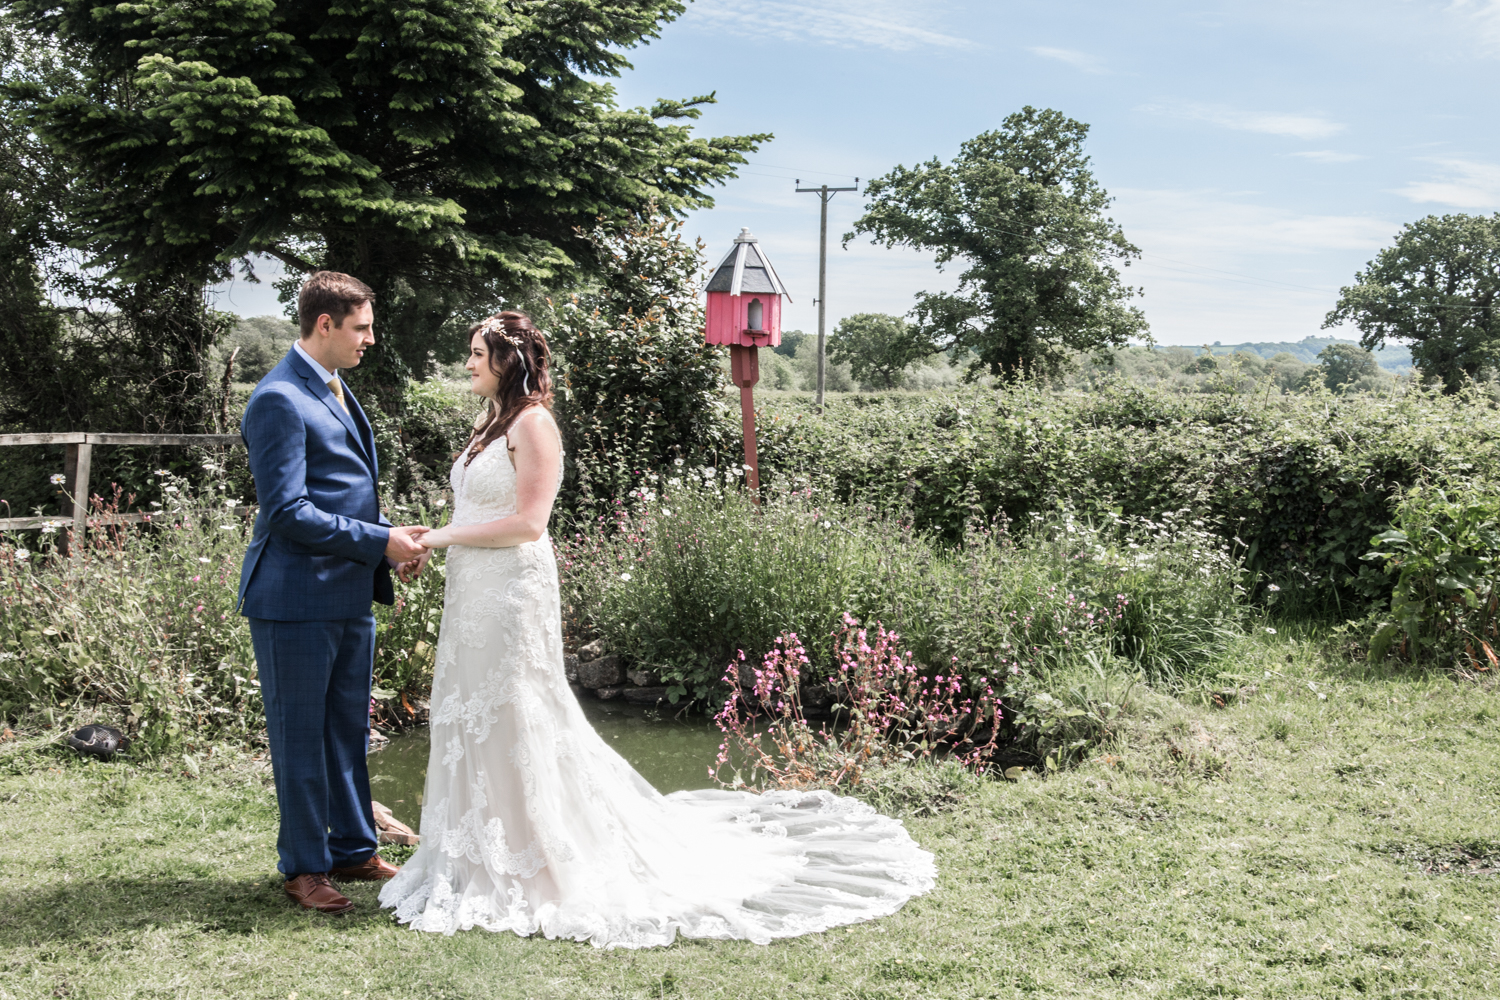 Alternative Wedding Photography in Swansea and The Gower